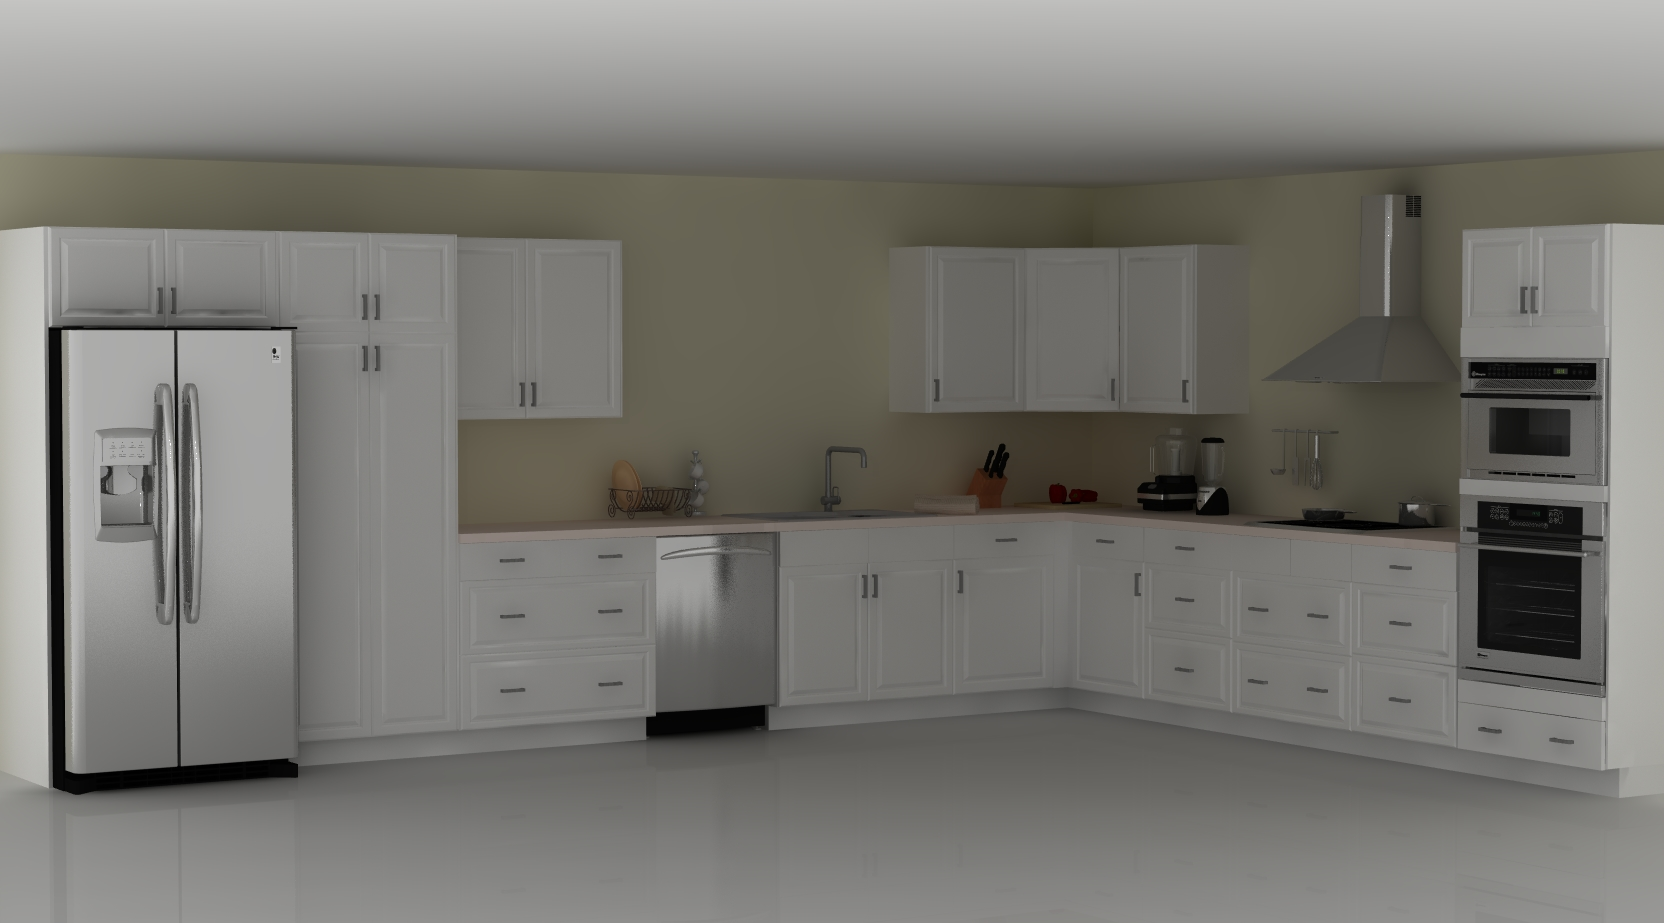 L Shaped Kitchen Ikea Kitchen Designer Tips Pros And Cons Of An L Shaped Layout